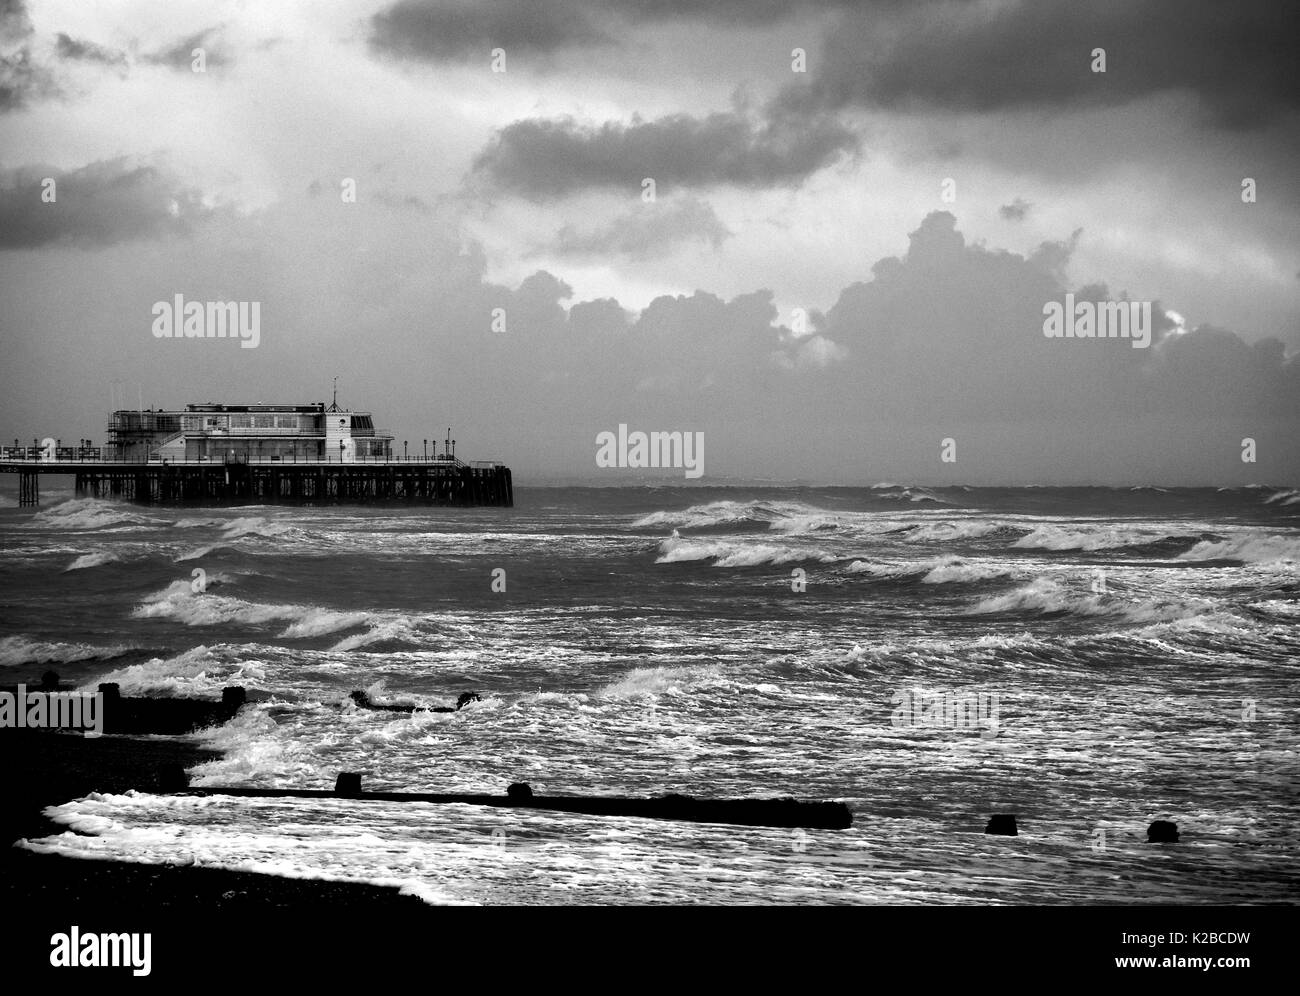 AJAXNETPHOTO. WORTHING, ENGLAND. - STORMY SEAS ON THE SOUTH COAST AFTER AUTUMNAL GALES. PHOTO;JONATHAN EASTLAND/AJAX REF:P78_132810_118_1 - Stock Image